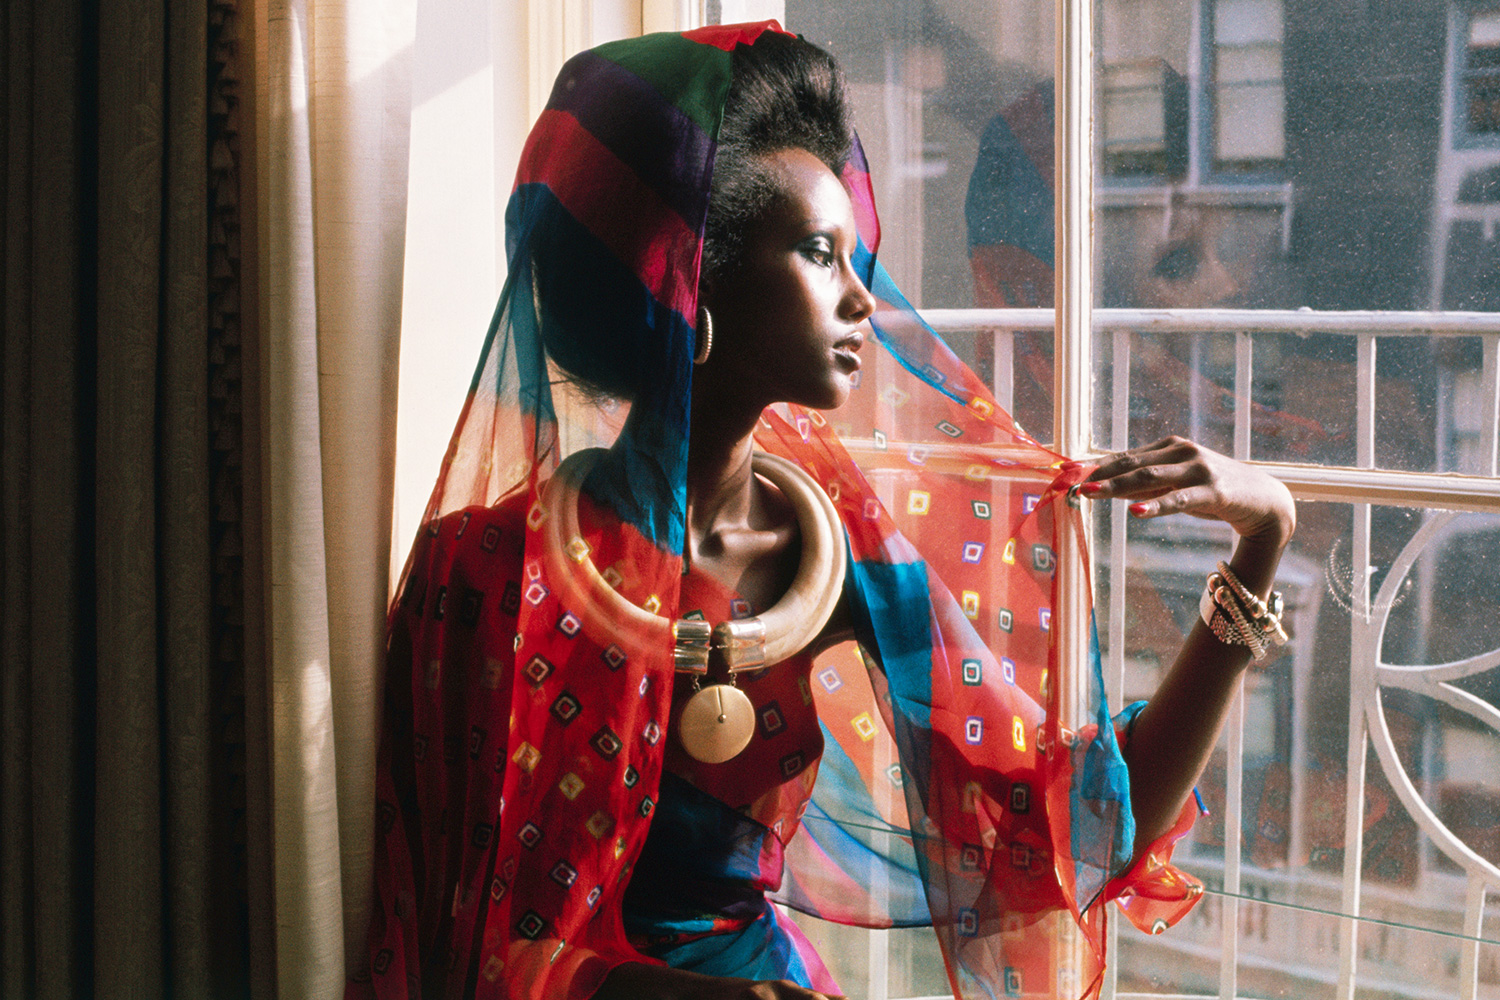 New York's newest fashion face, model Iman (full name Iman Mohamed Abdulmajid), a 20-year-old, 5-10, regally striking Somali tribeswoman, launches her modeling career at a press conference here